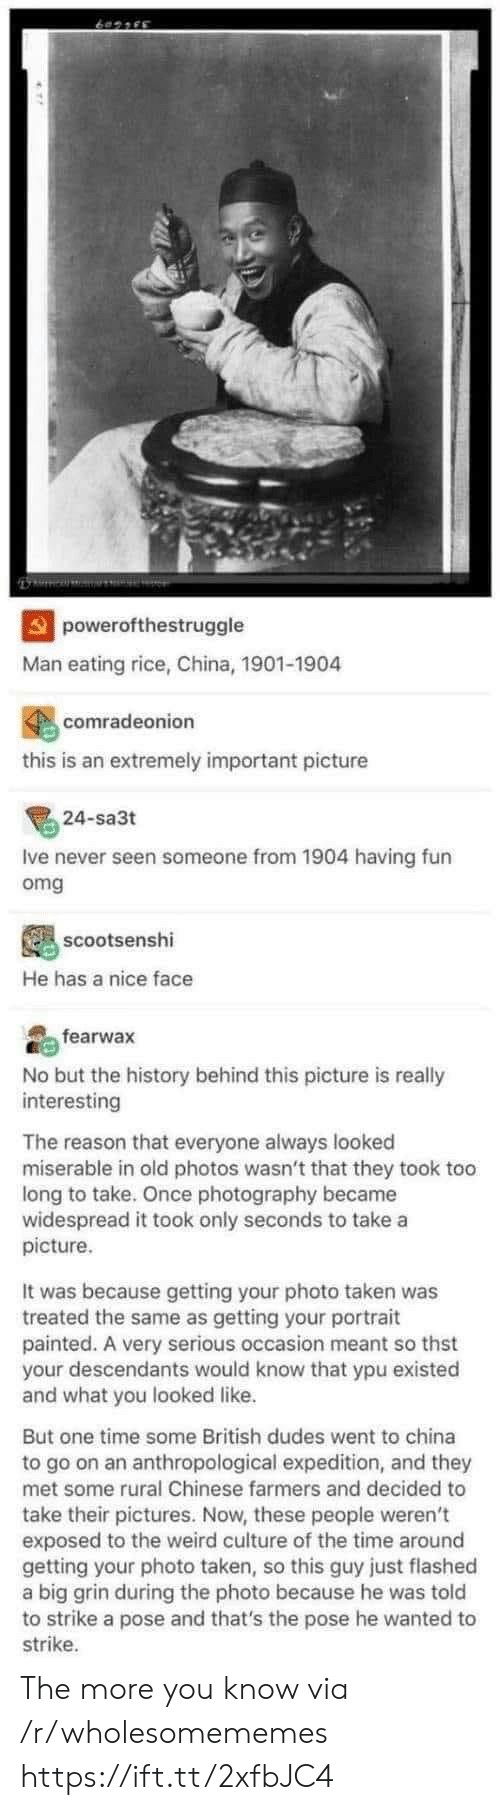 Omg, Taken, and The More You Know: powerofthestruggle  Man eating rice, China, 1901-1904  comradeonion  this is an extremely important picture  24-sa3t  Ive never seen someone from 1904 having fun  omg  scootsenshi  He has a nice face  fearwax  No but the history behind this picture is really  interesting  The reason that everyone always looked  miserable in old photos wasn't that they took too  long to take. Once photography became  widespread it took only seconds to take a  picture  It was because getting your photo taken was  treated the same as getting your portrait  painted. A very serious occasion meant so thst  your descendants would know that ypu existed  and what you looked like.  But one time some British dudes went to china  to go on an anthropological expedition, and they  met some rural Chinese farmers and decided to  take their pictures. Now, these people weren't  exposed to the weird culture of the time around  getting your photo taken, so this guy just flashed  a big grin during the photo because he was told  to strike a pose and that's the pose he wanted to  strike The more you know via /r/wholesomememes https://ift.tt/2xfbJC4